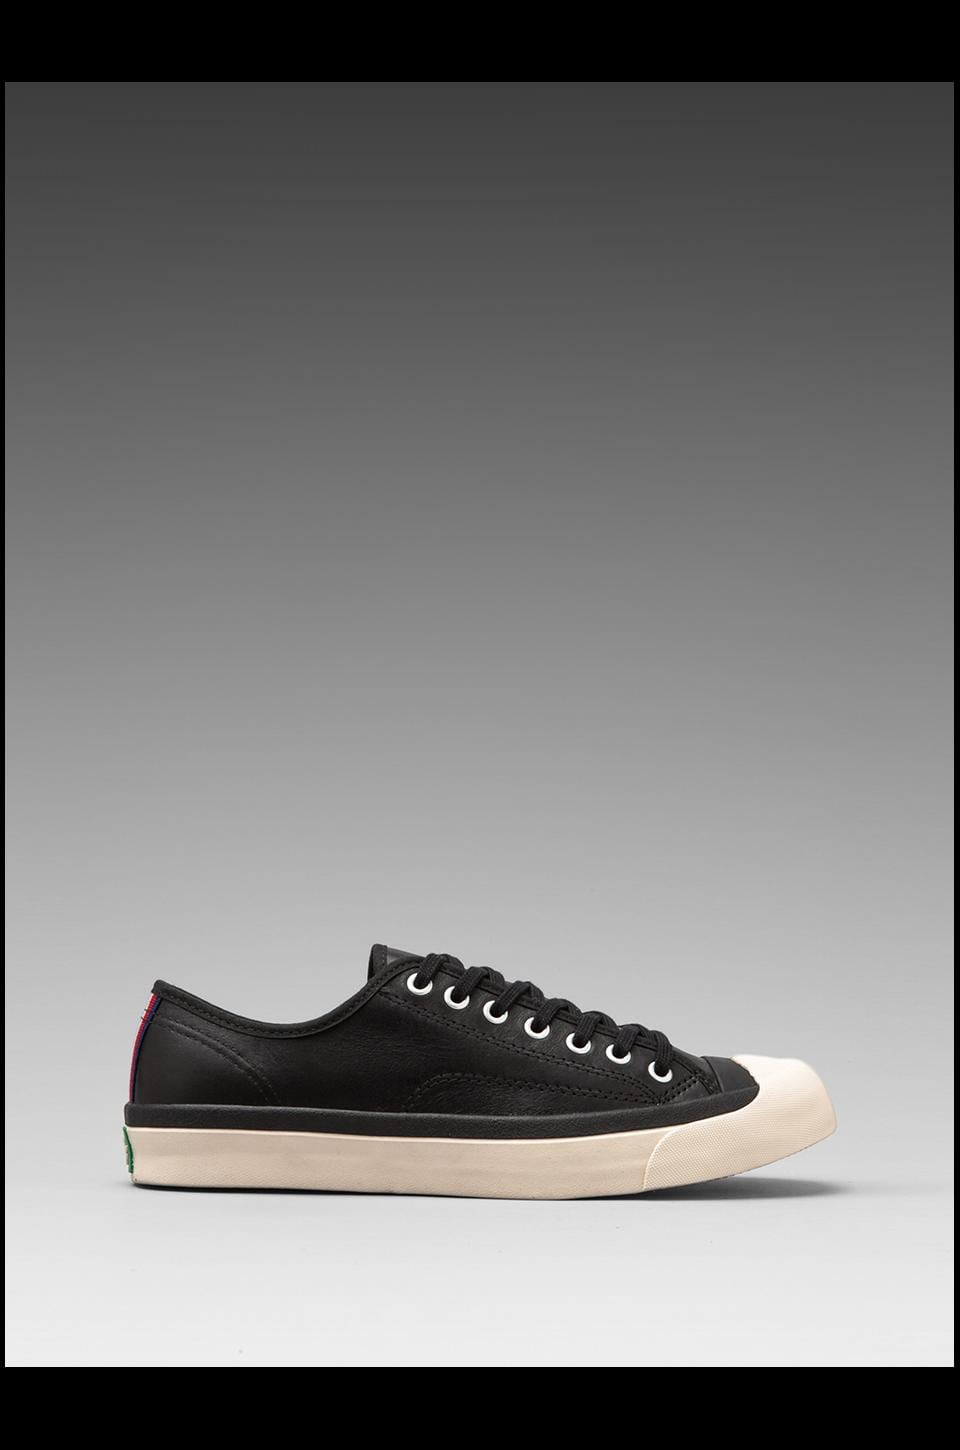 PF Flyers All Court Leather in Black